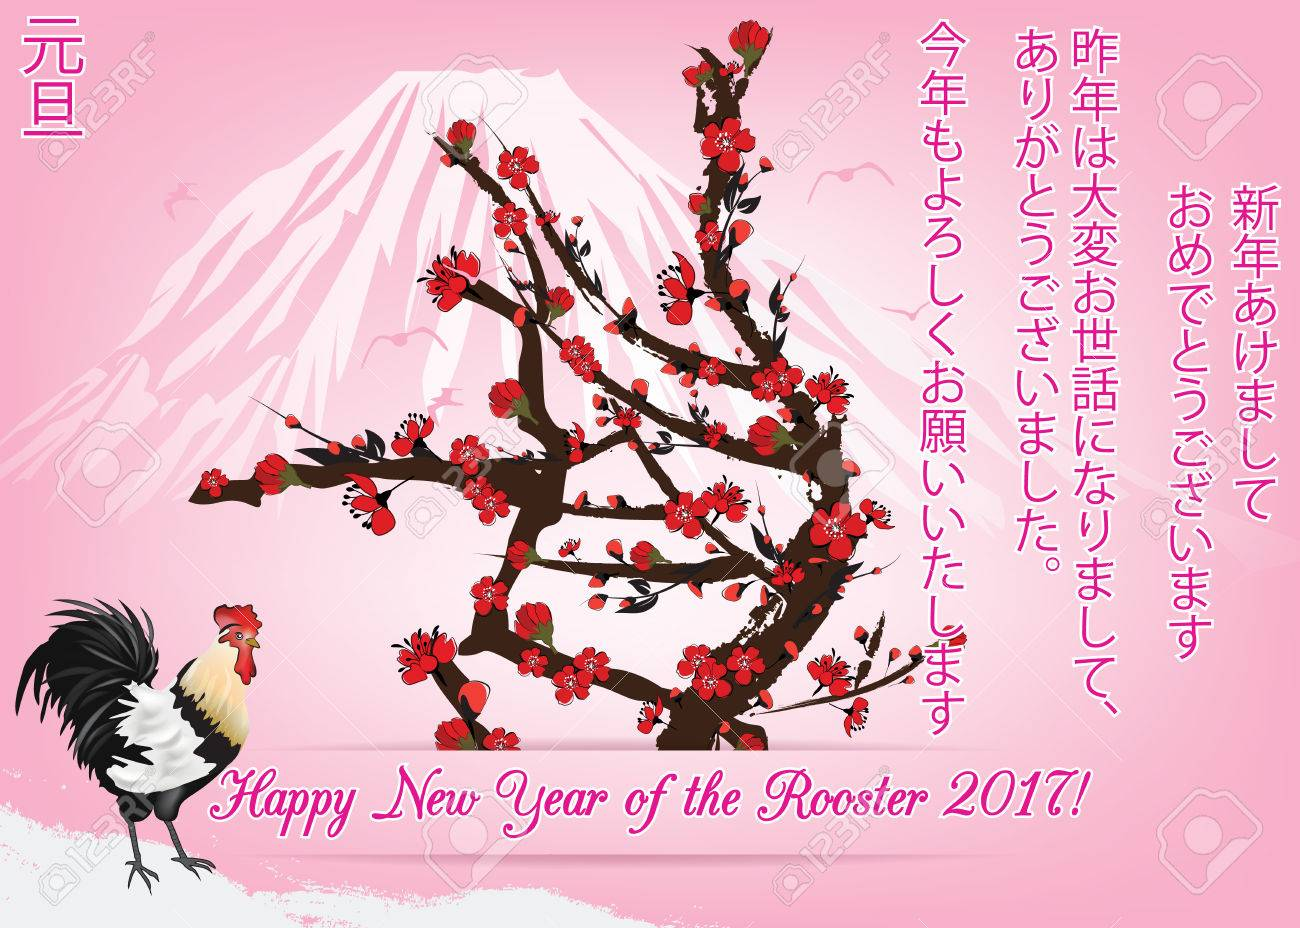 Japanese new year greeting card for the year of the rooster 2017 japanese new year greeting card for the year of the rooster 2017 text meaning congratulations on the new year japanese expression equivalent with thank kristyandbryce Choice Image